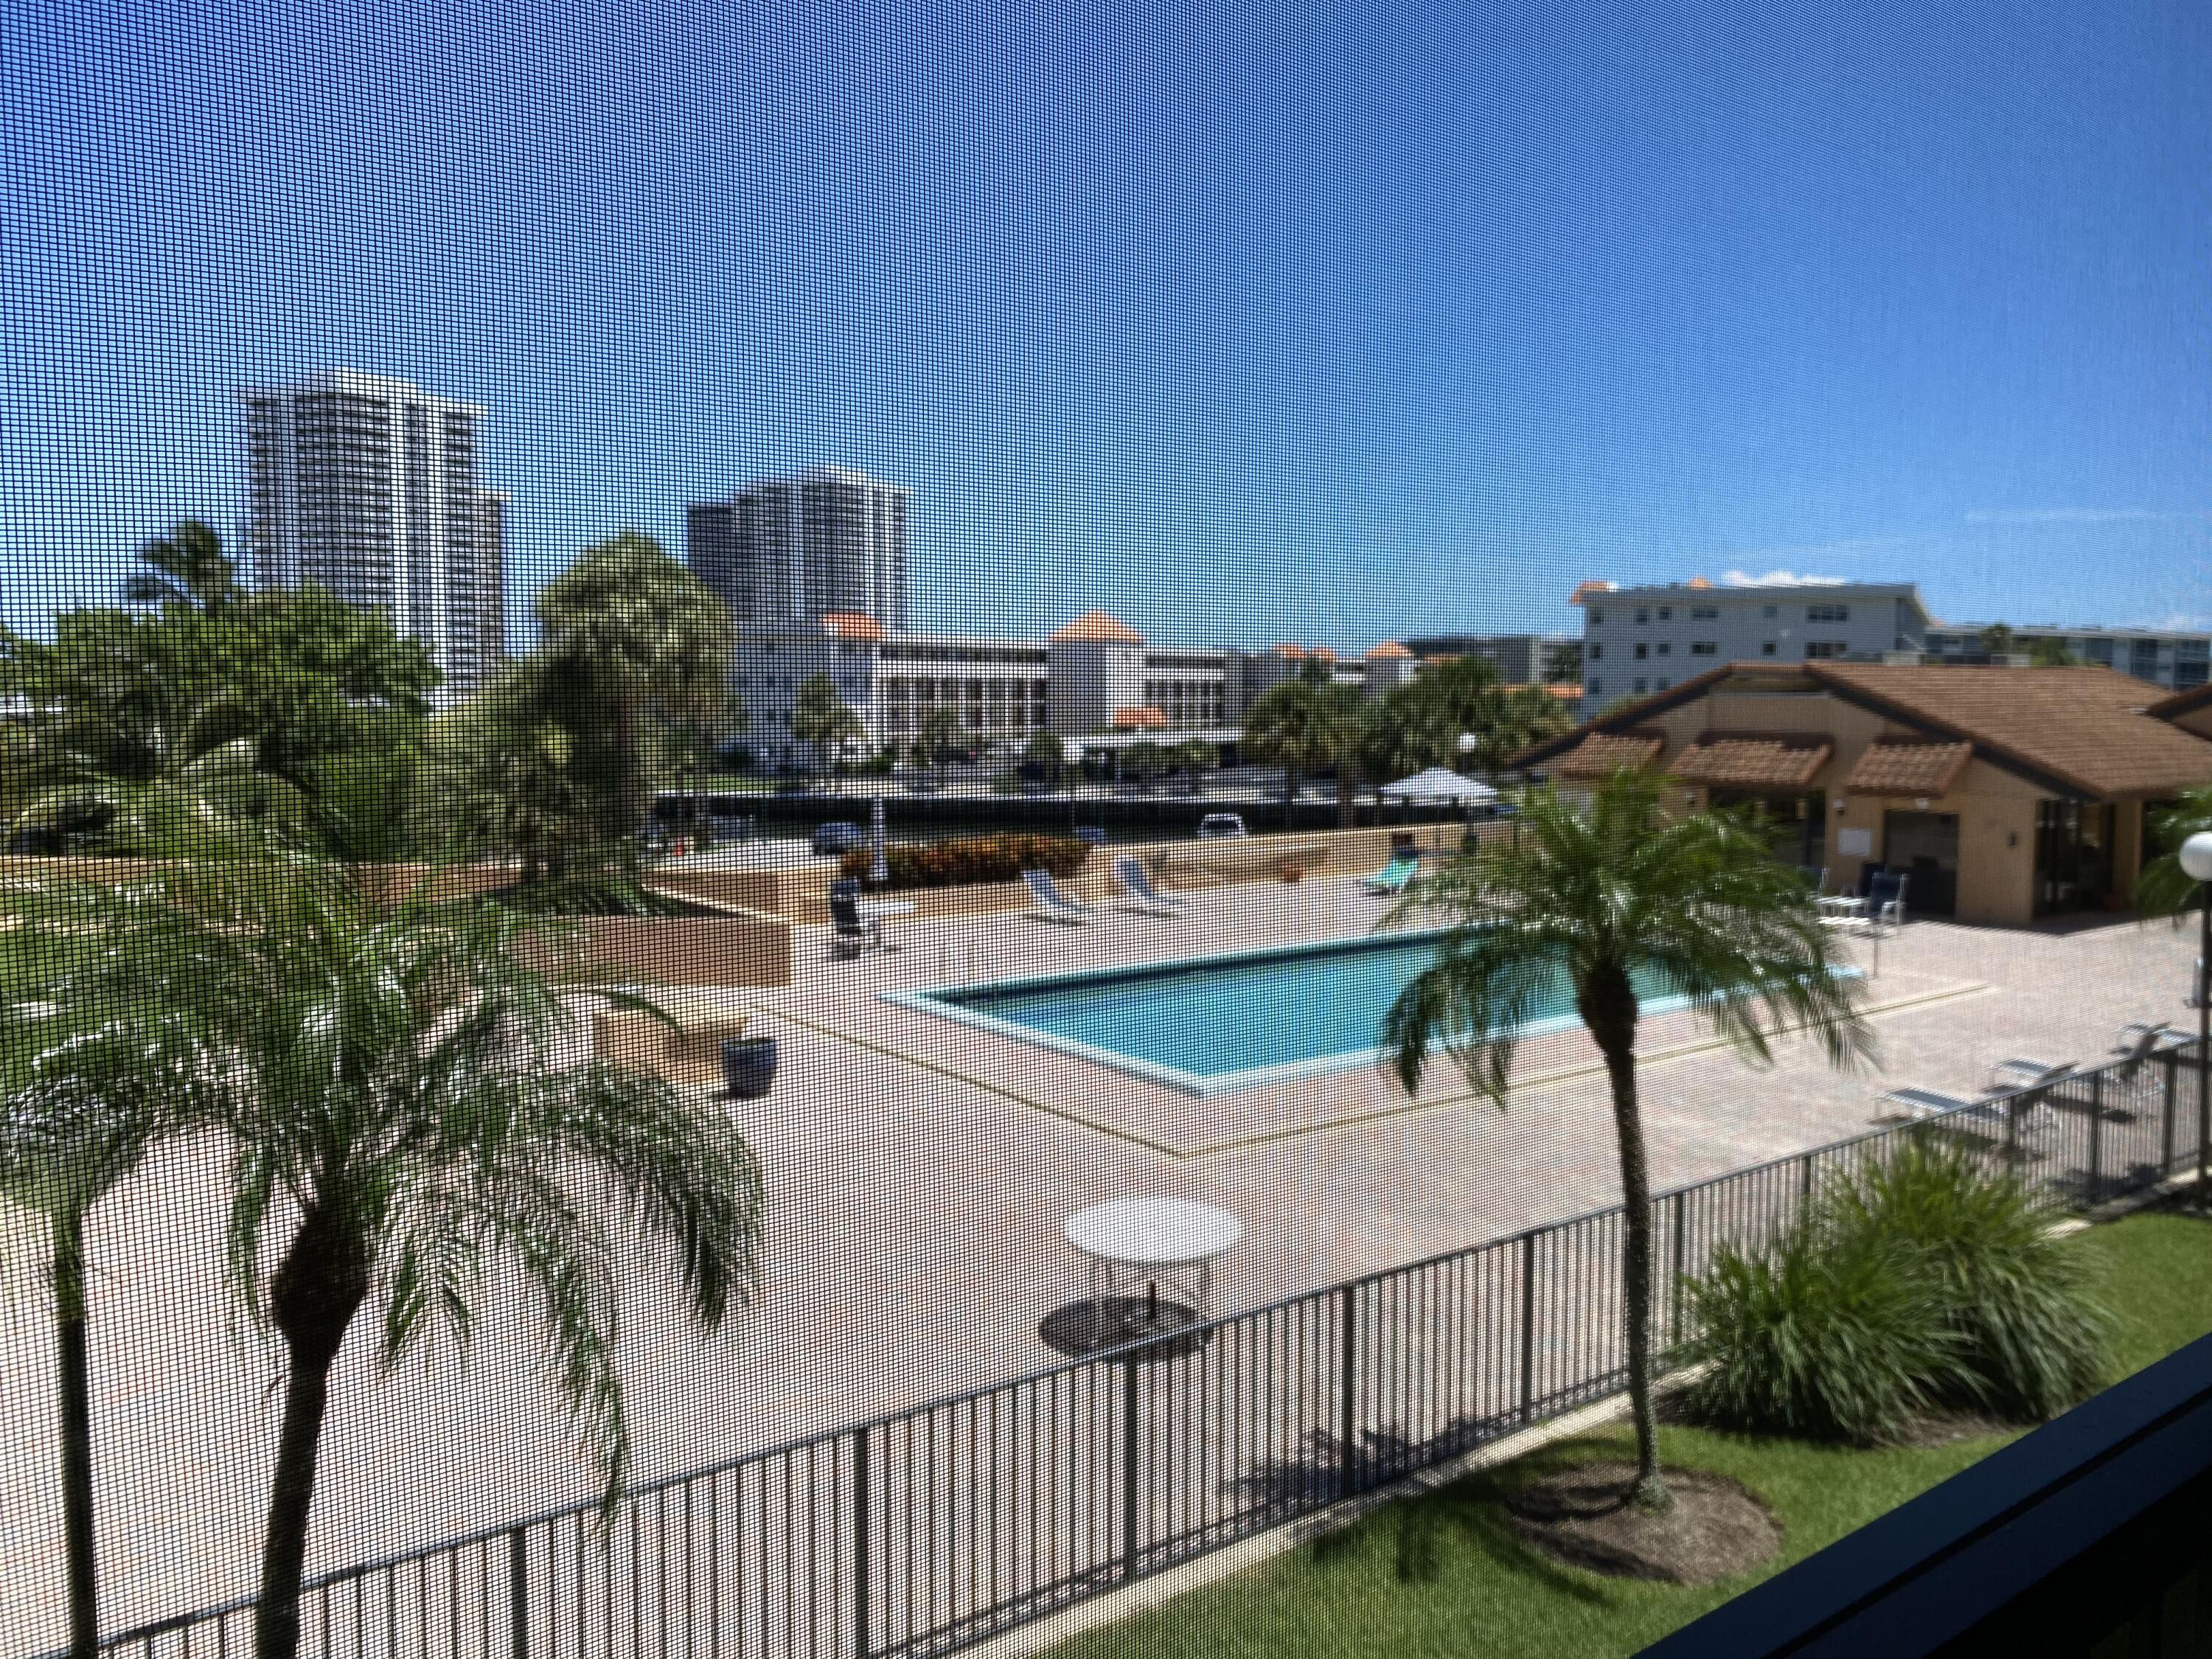 Pool & Clubhouse View